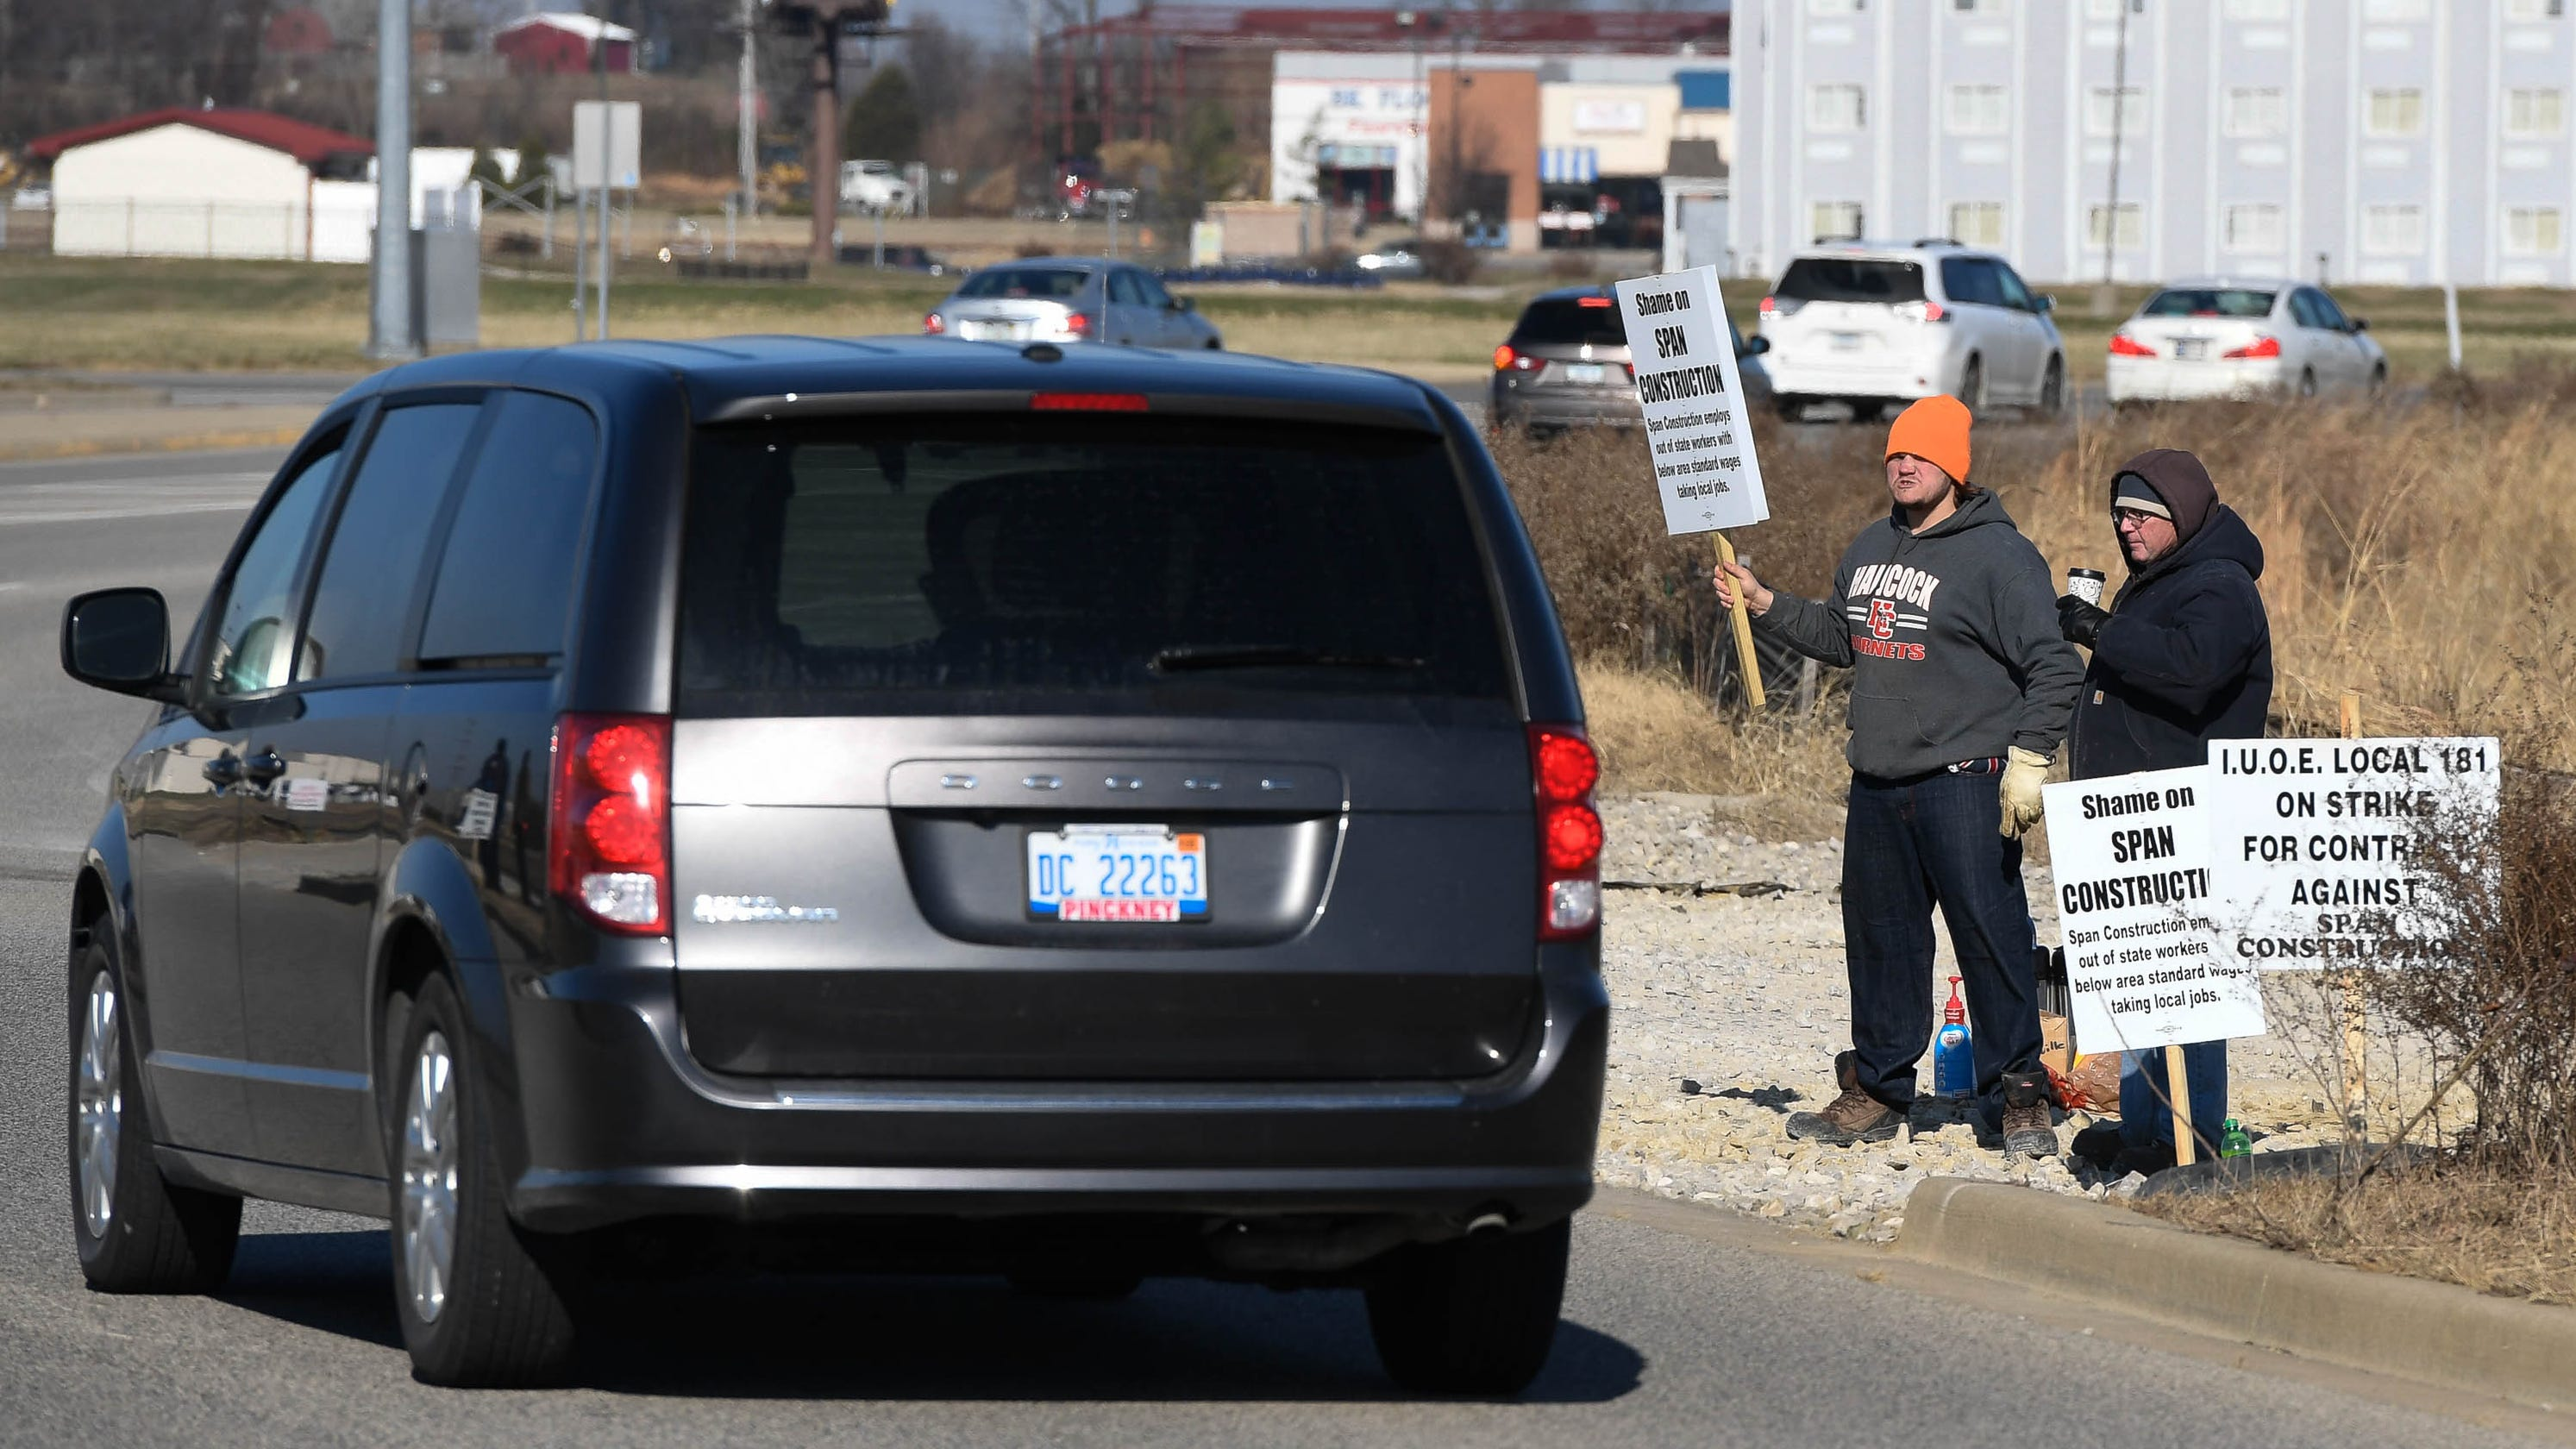 Costco Wholesale site in Evansville picketed by local unions